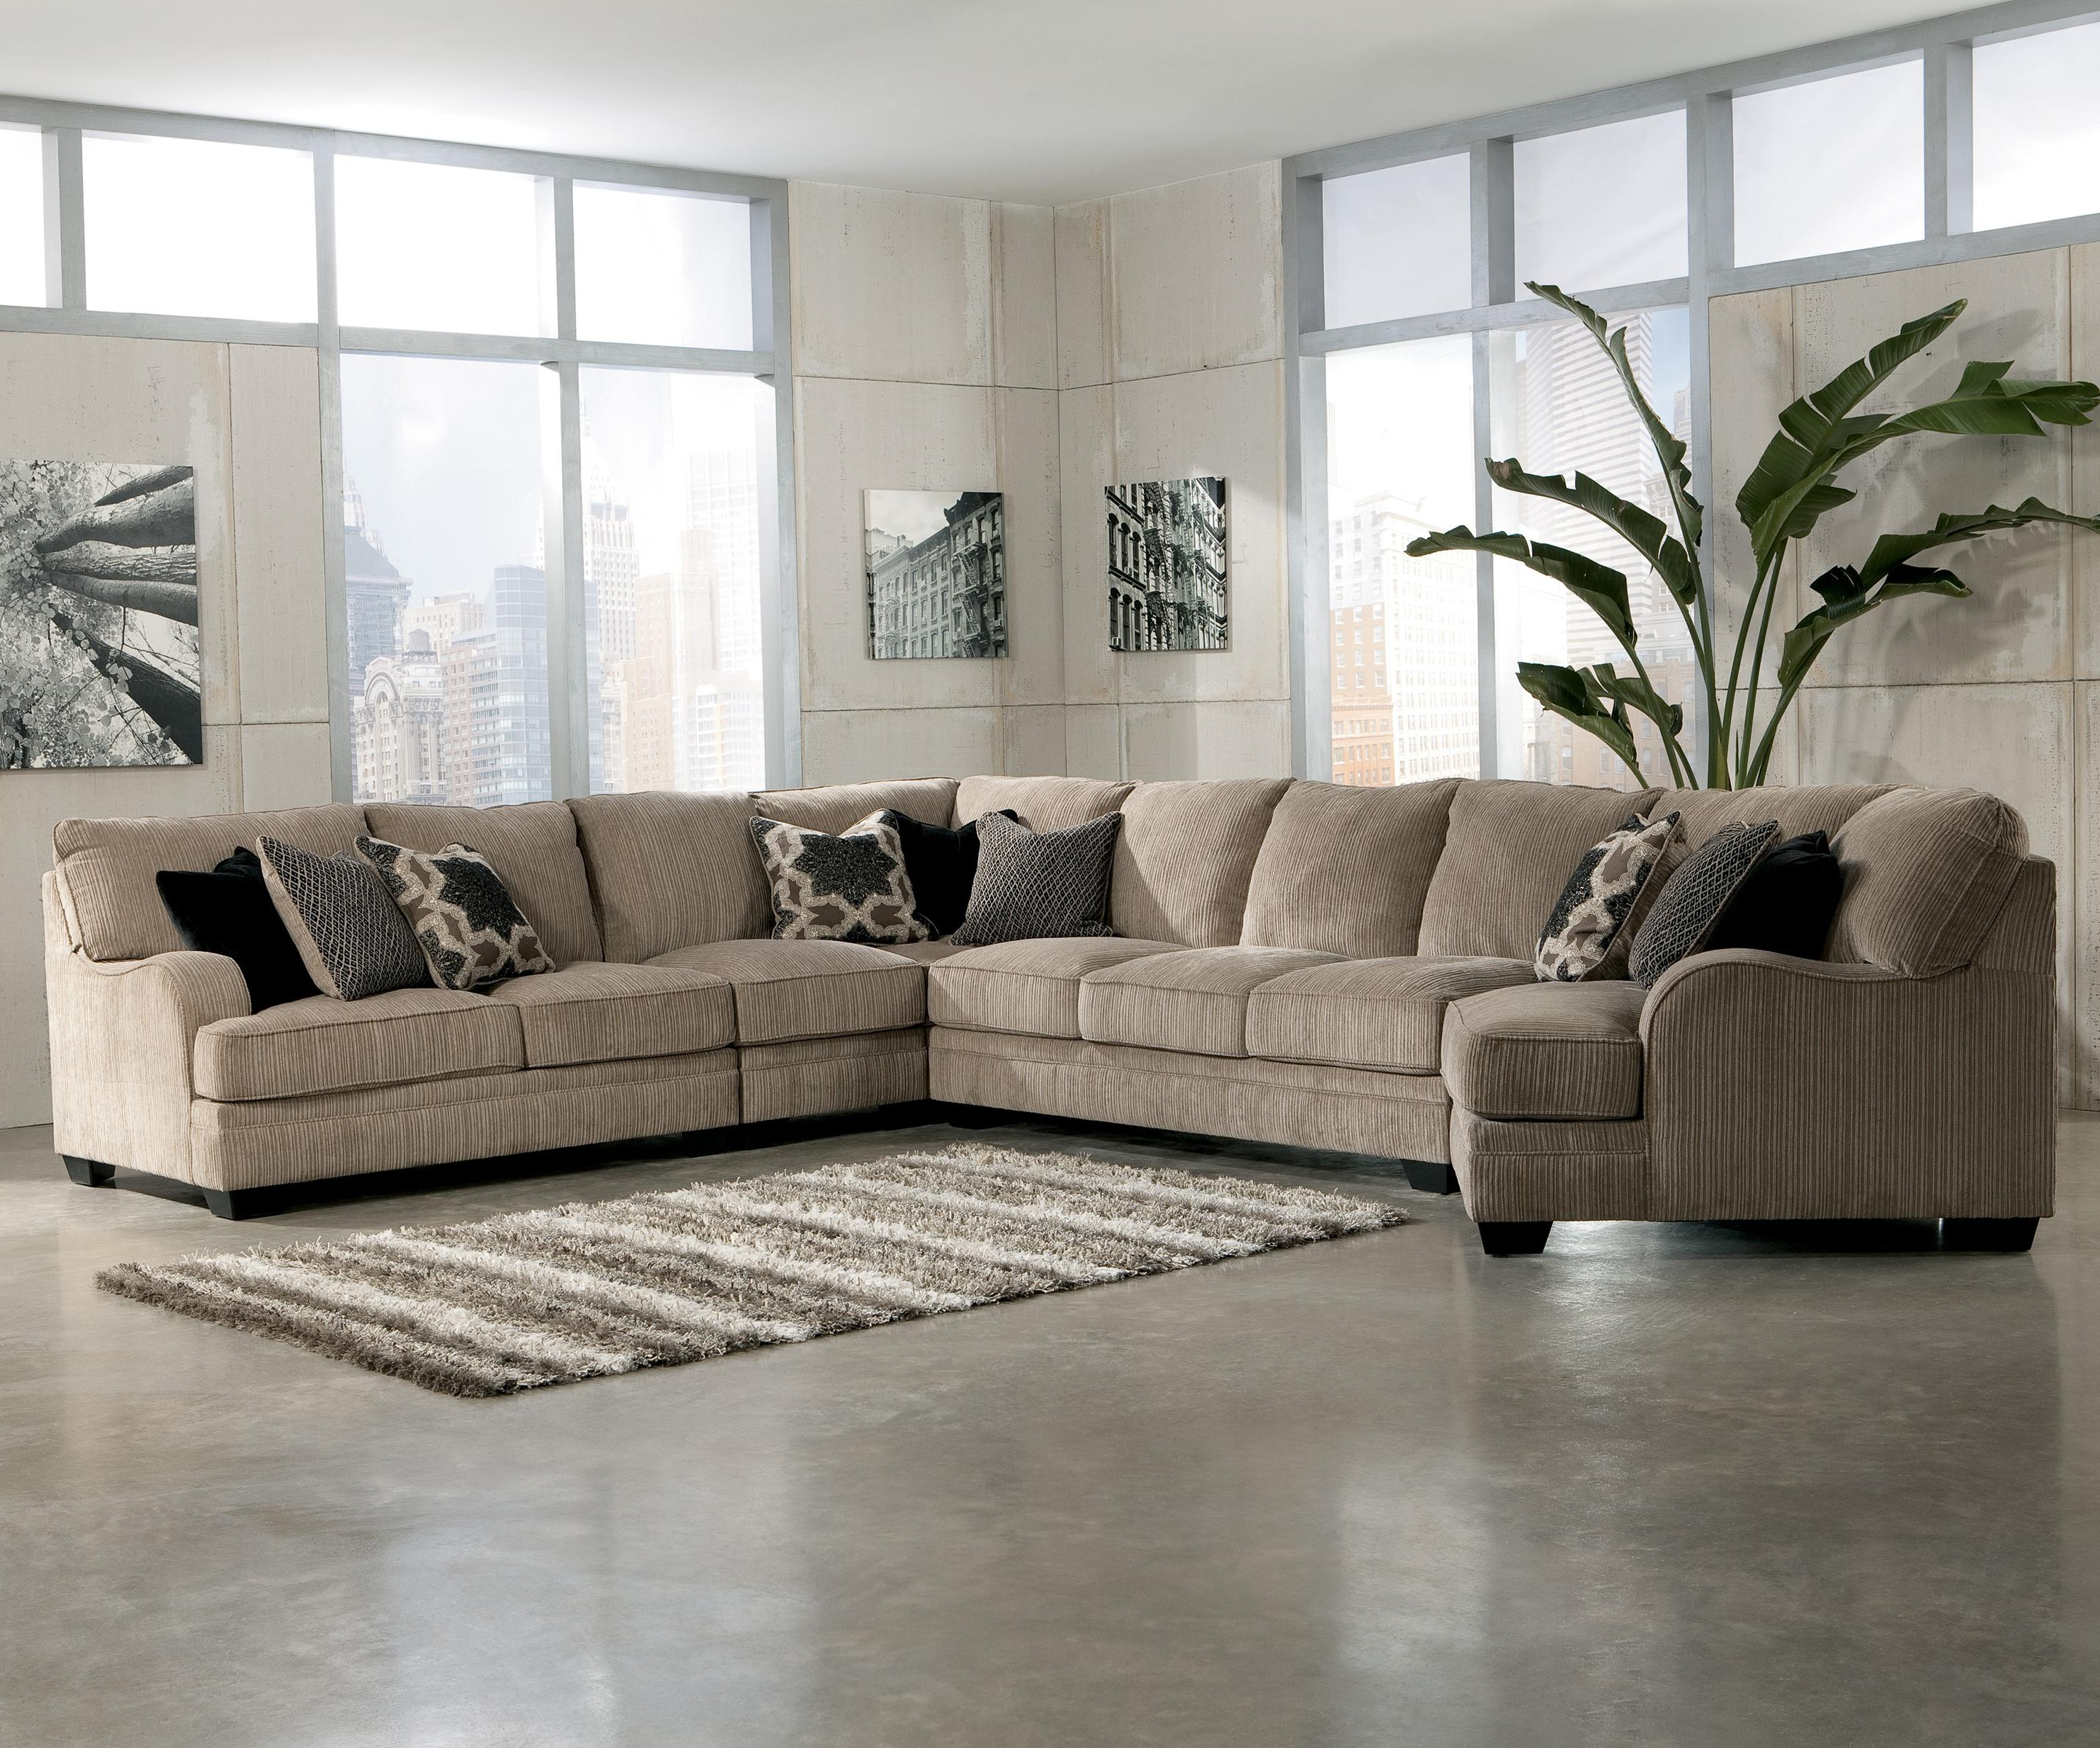 Signature Designashley Katisha – Platinum 5 Piece Sectional Sofa Regarding Well Known Norfolk Grey 6 Piece Sectionals With Laf Chaise (View 14 of 20)